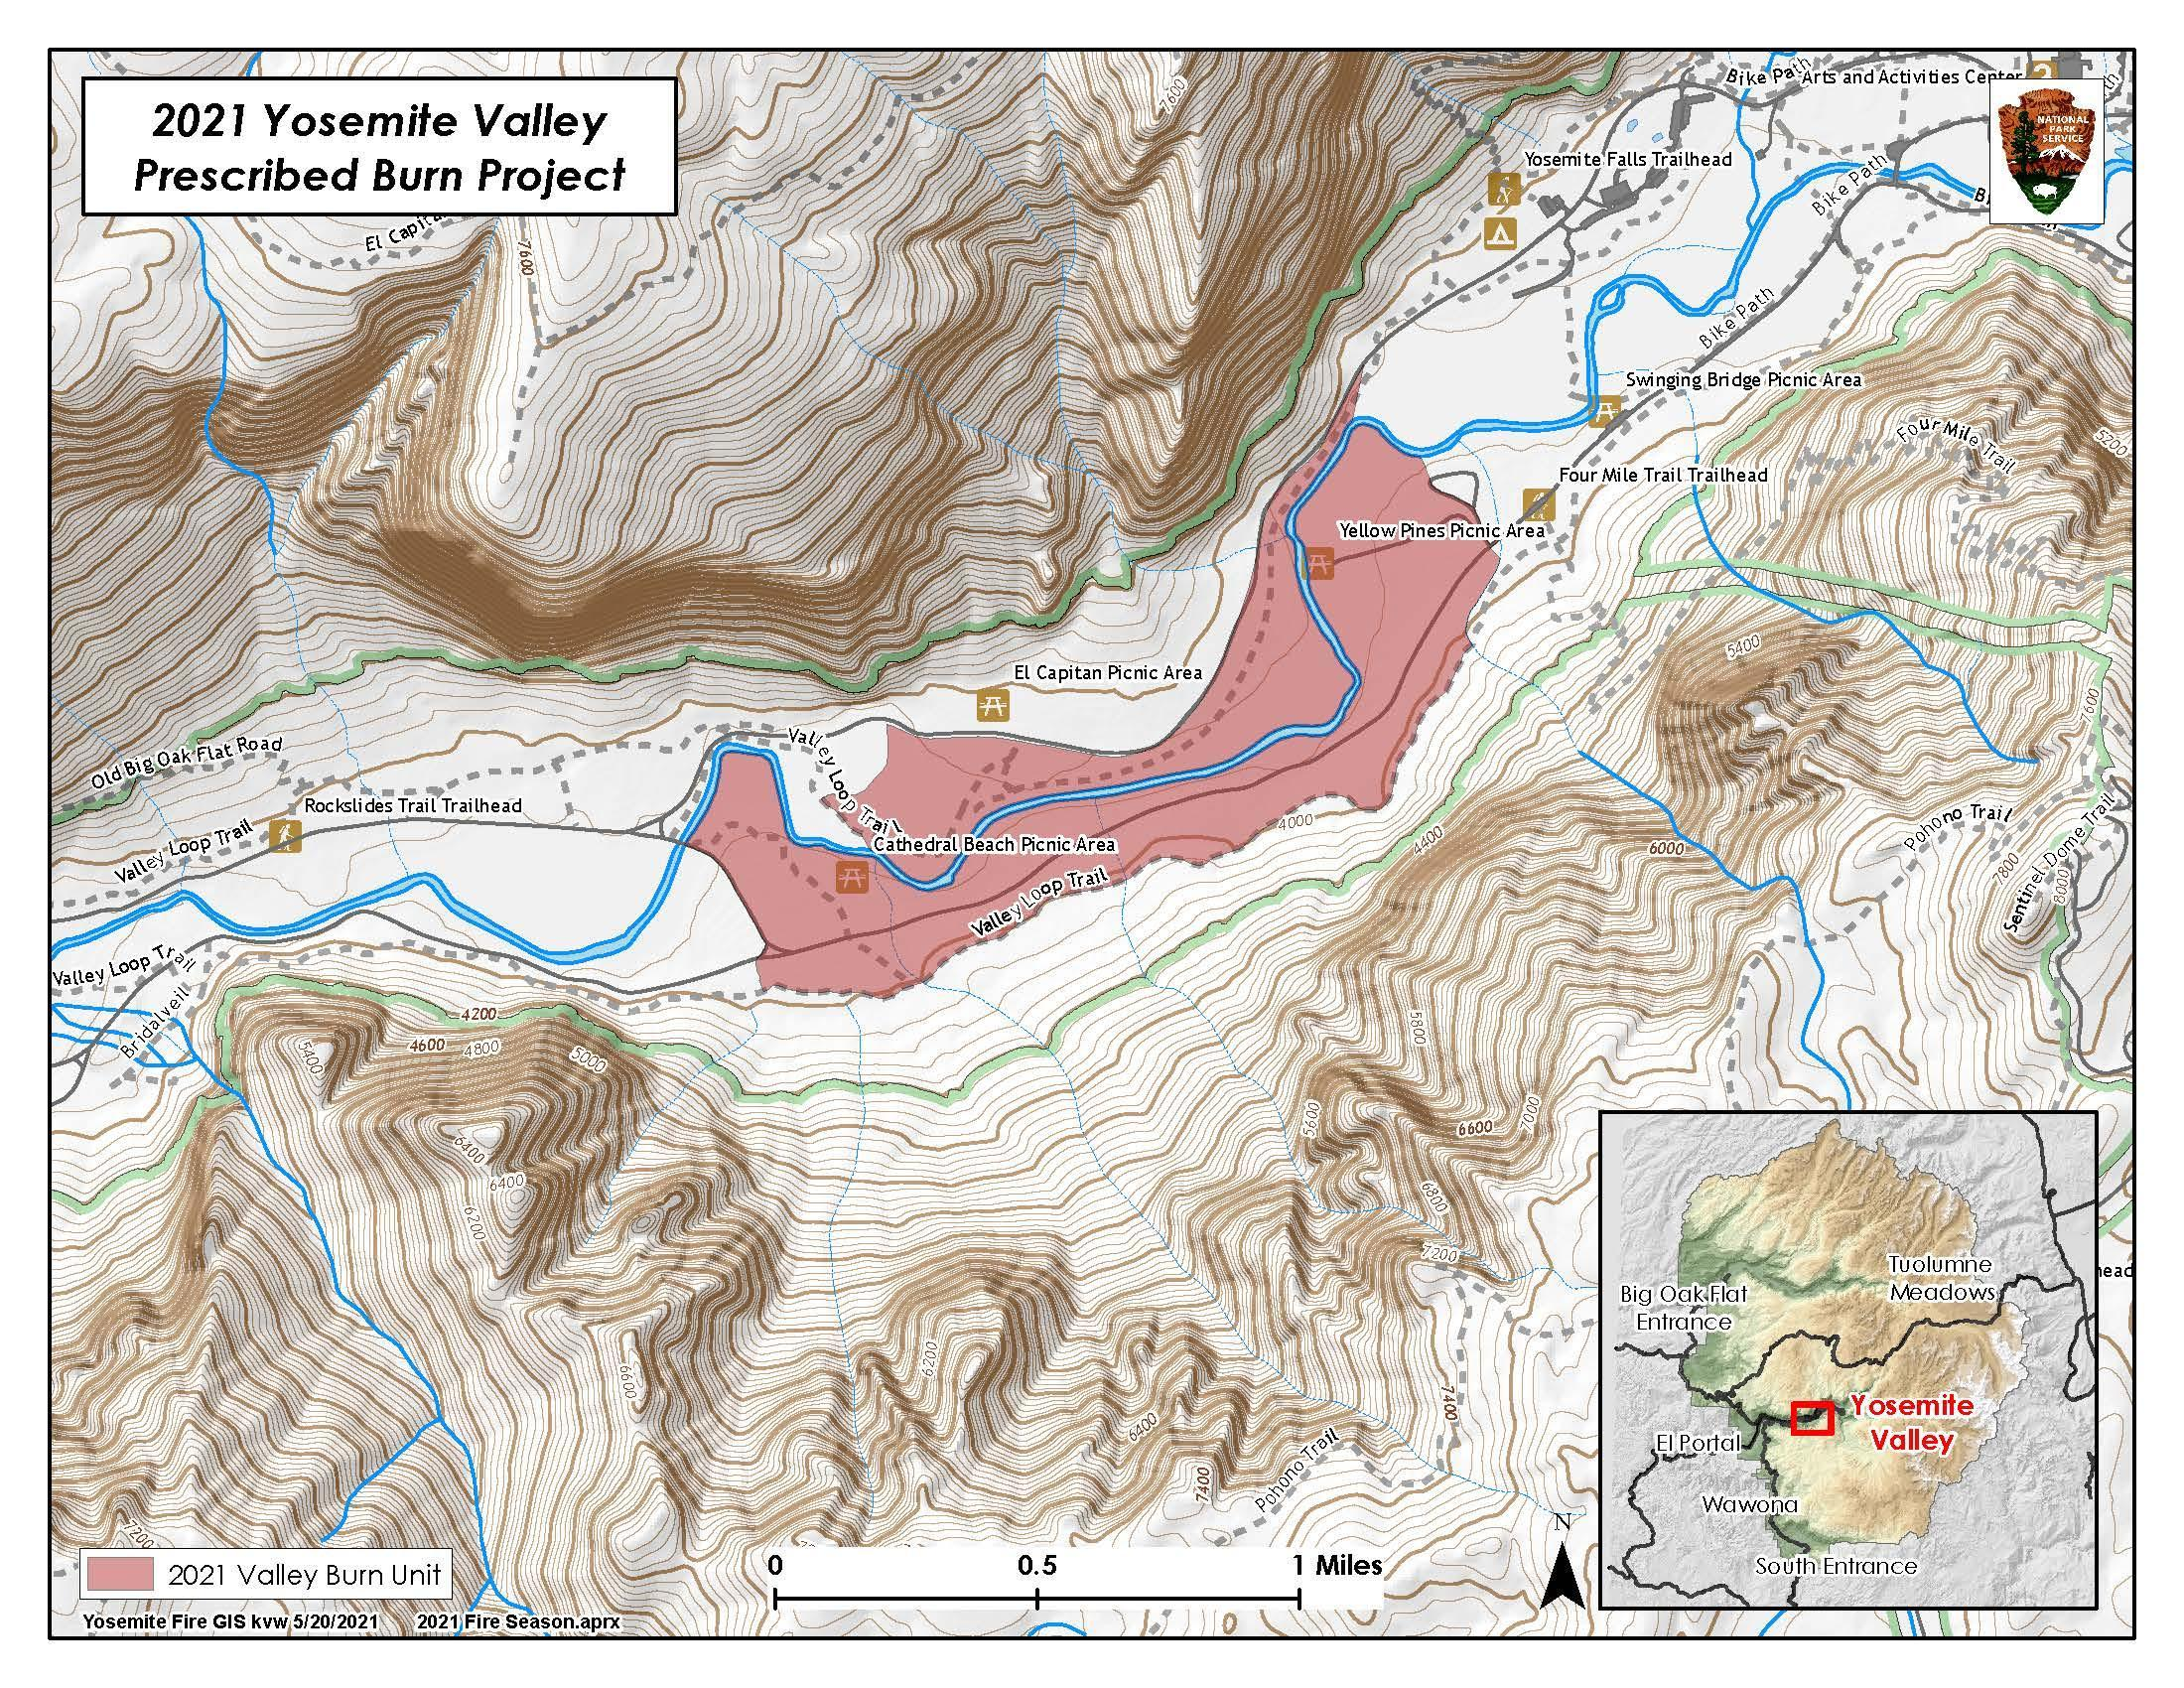 A light brown topography map is overlaid by a long red polygon outlying the burn area on both sides of a river in the middle of the map.